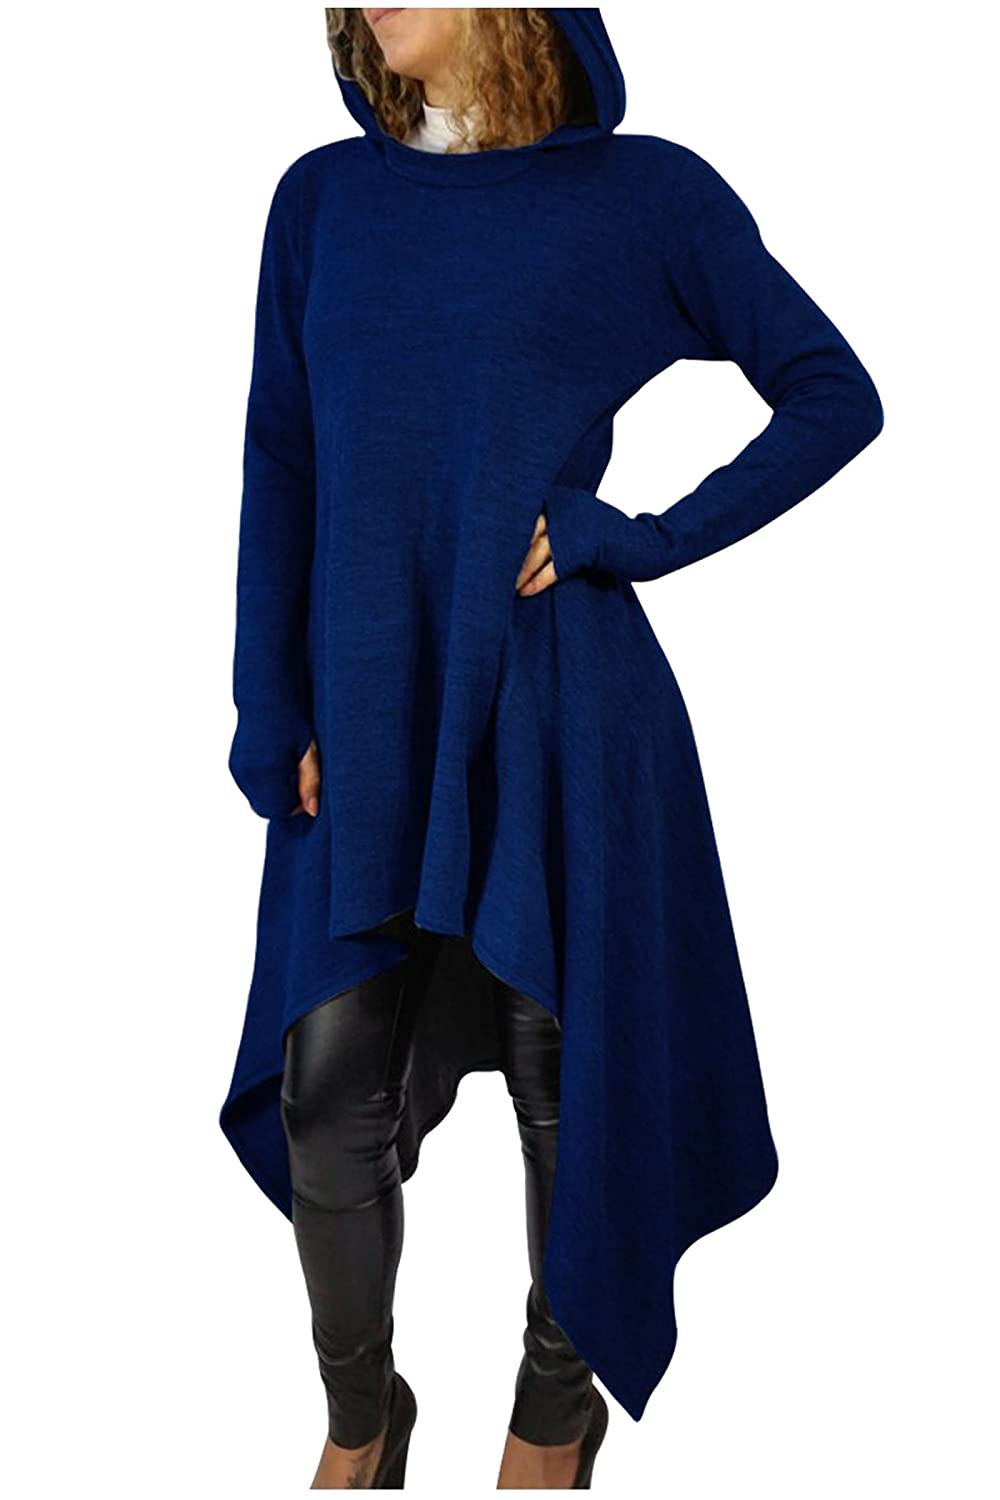 df450c6d91 Top 10 wholesale Evening Dressy Tunic Tops - Chinabrands.com